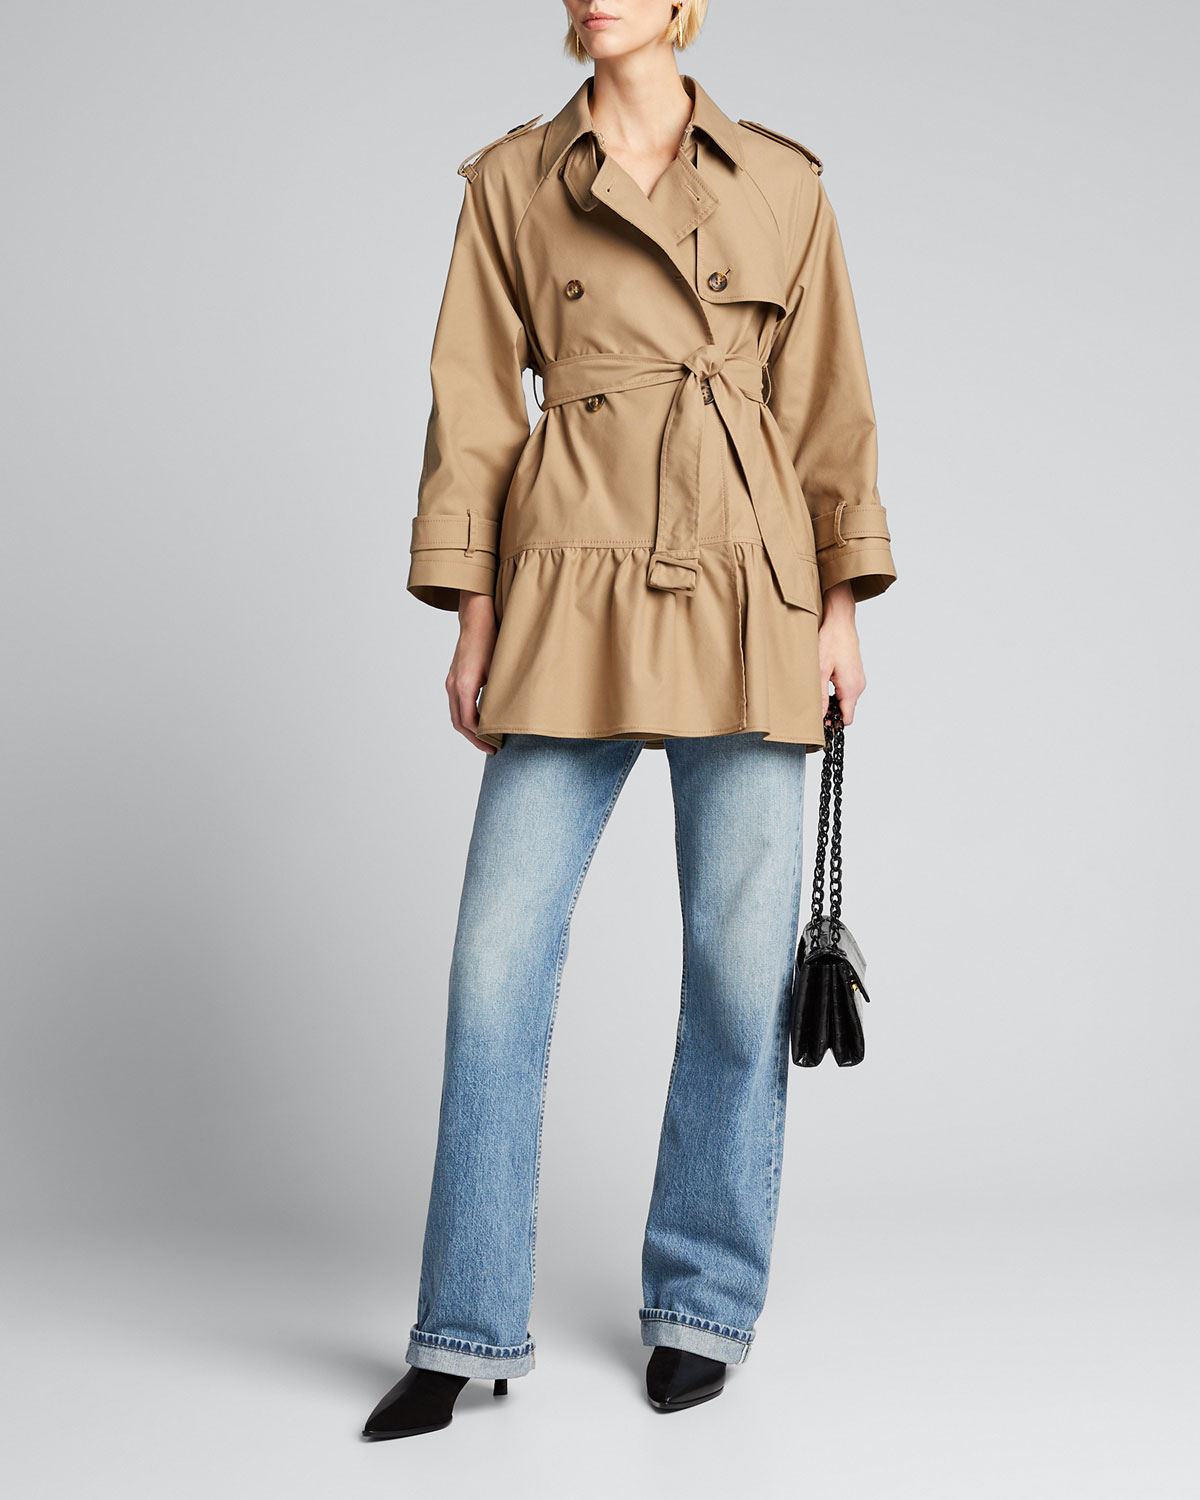 Red Valentino Coats ARMOR TECH FLOUNCE-HEM TRENCH COAT